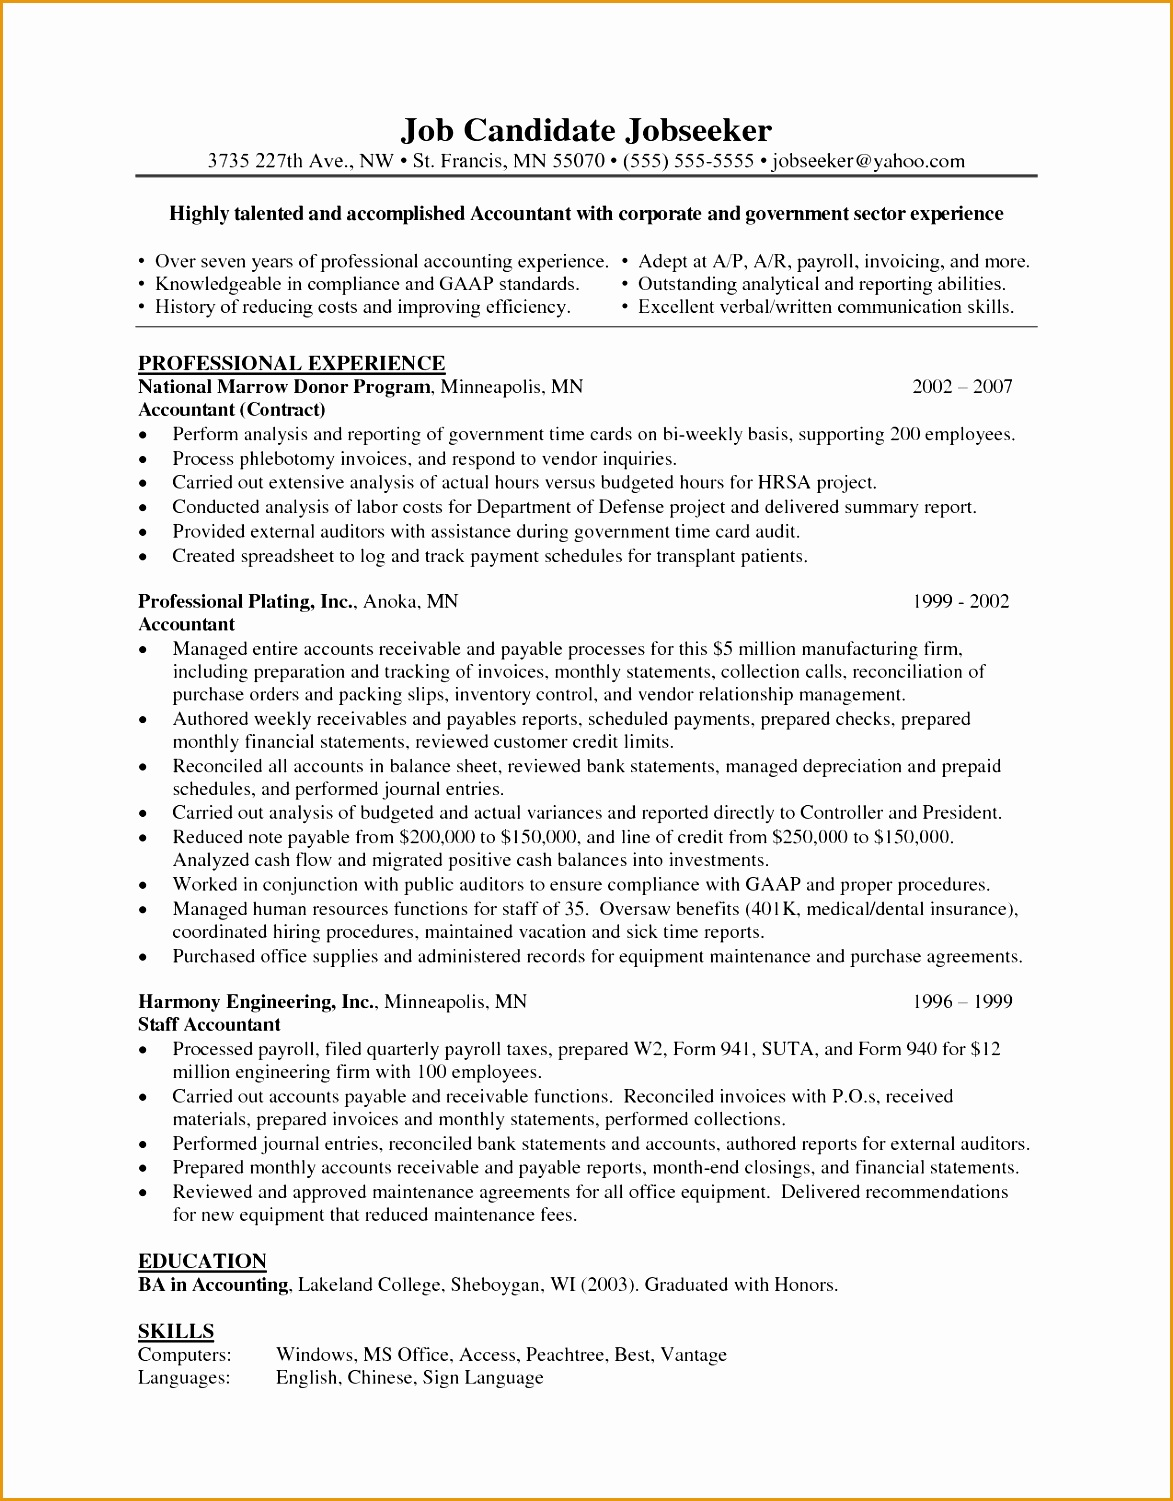 50 phlebotomist resume sample15011173